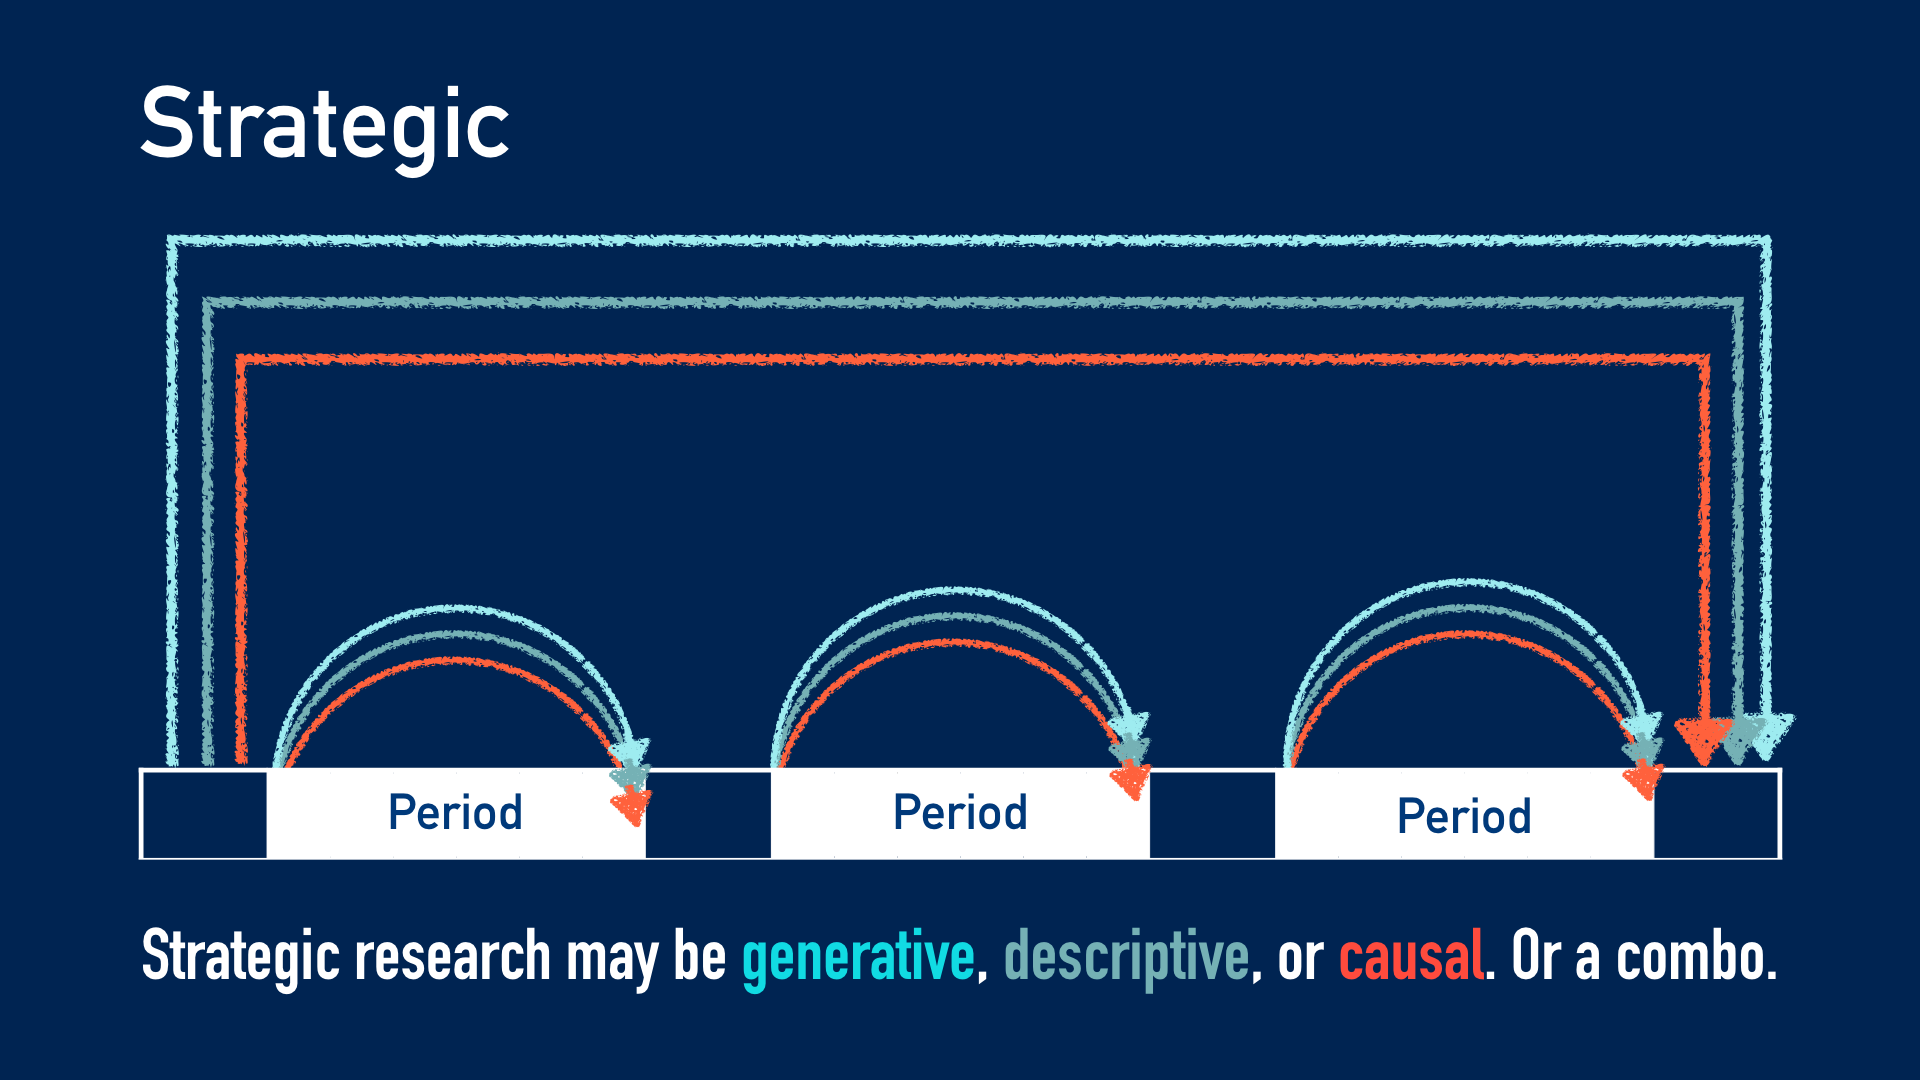 Diagram: Strategic research may be generative, descriptive, or causal. Or a combo.